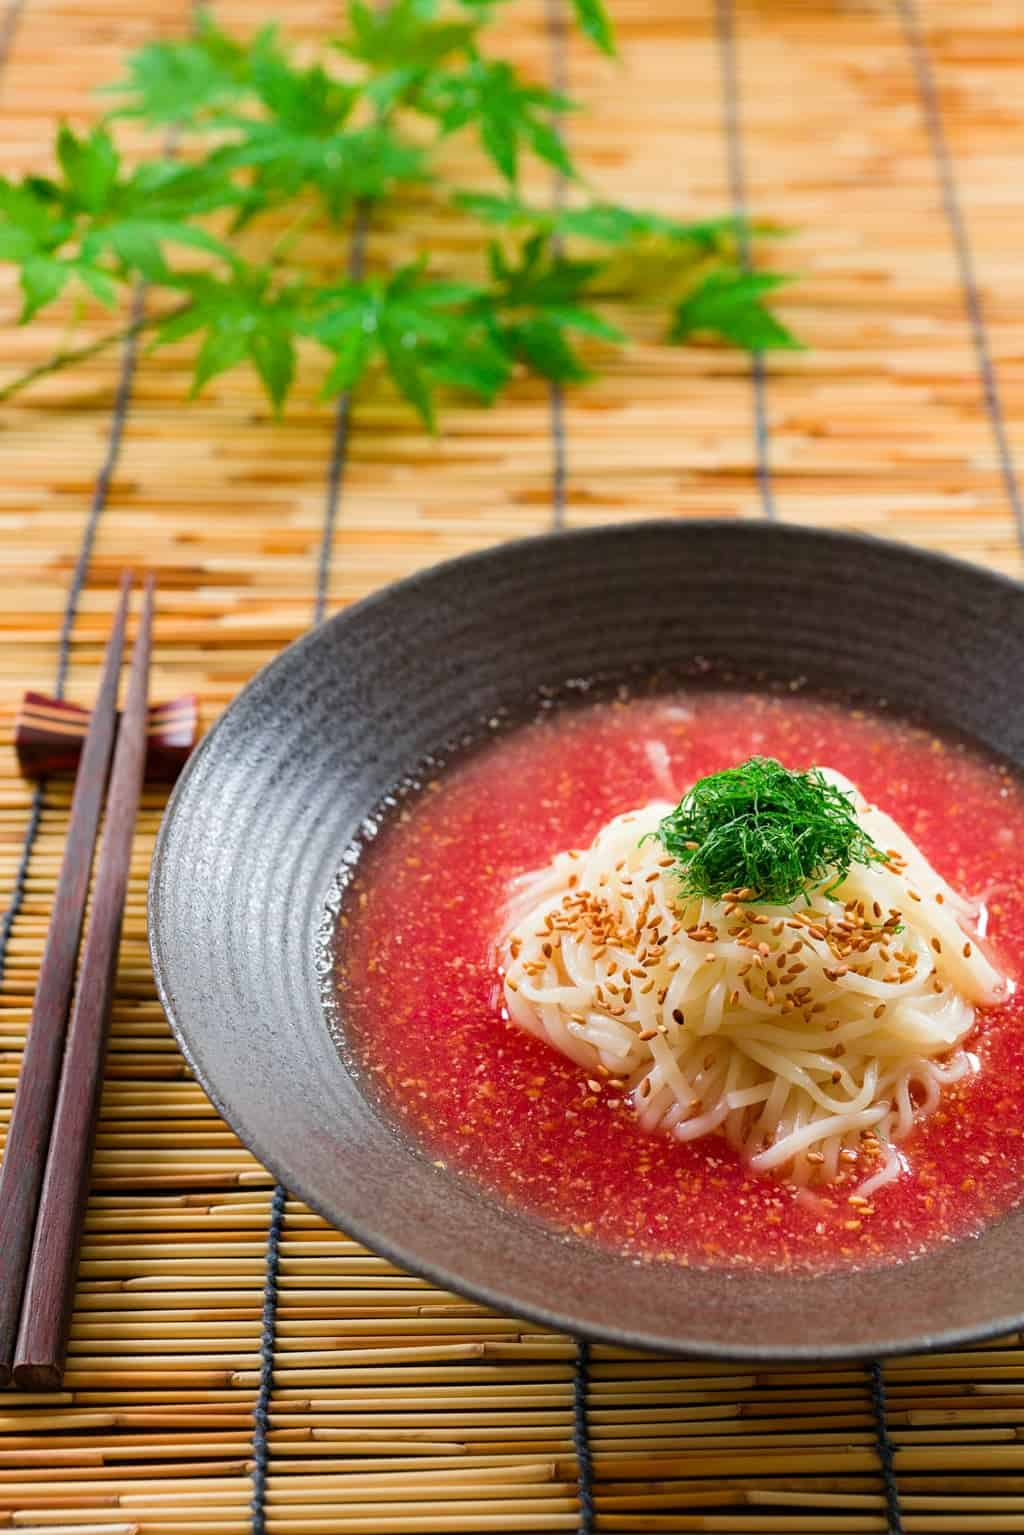 Chilled udon in an ice-cold tomato sesame broth. The perfect noodle soup for a hot summer day.